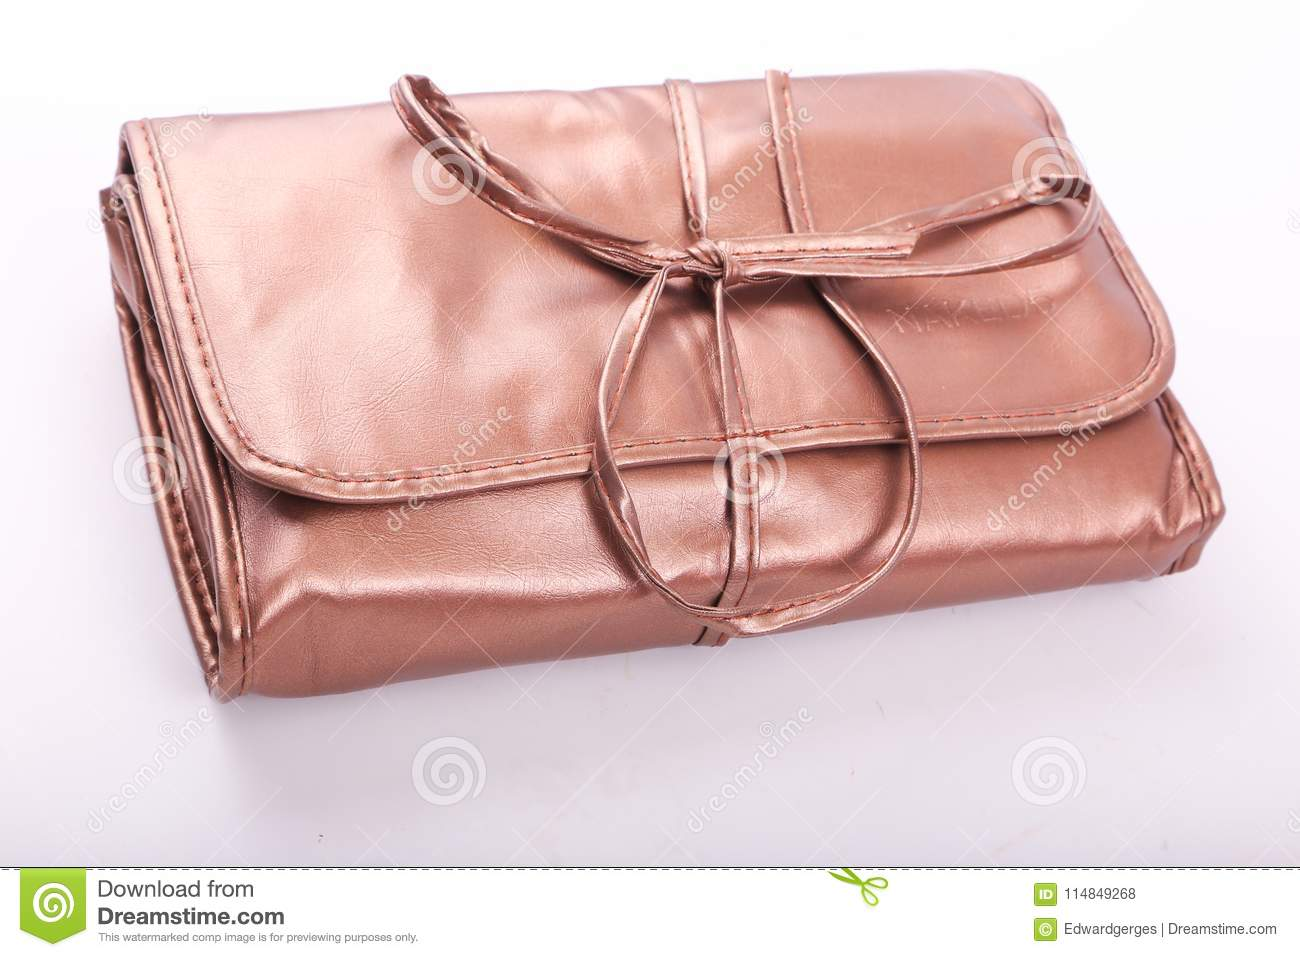 46f2583c30 Lady brown bag stock photo. Image of background